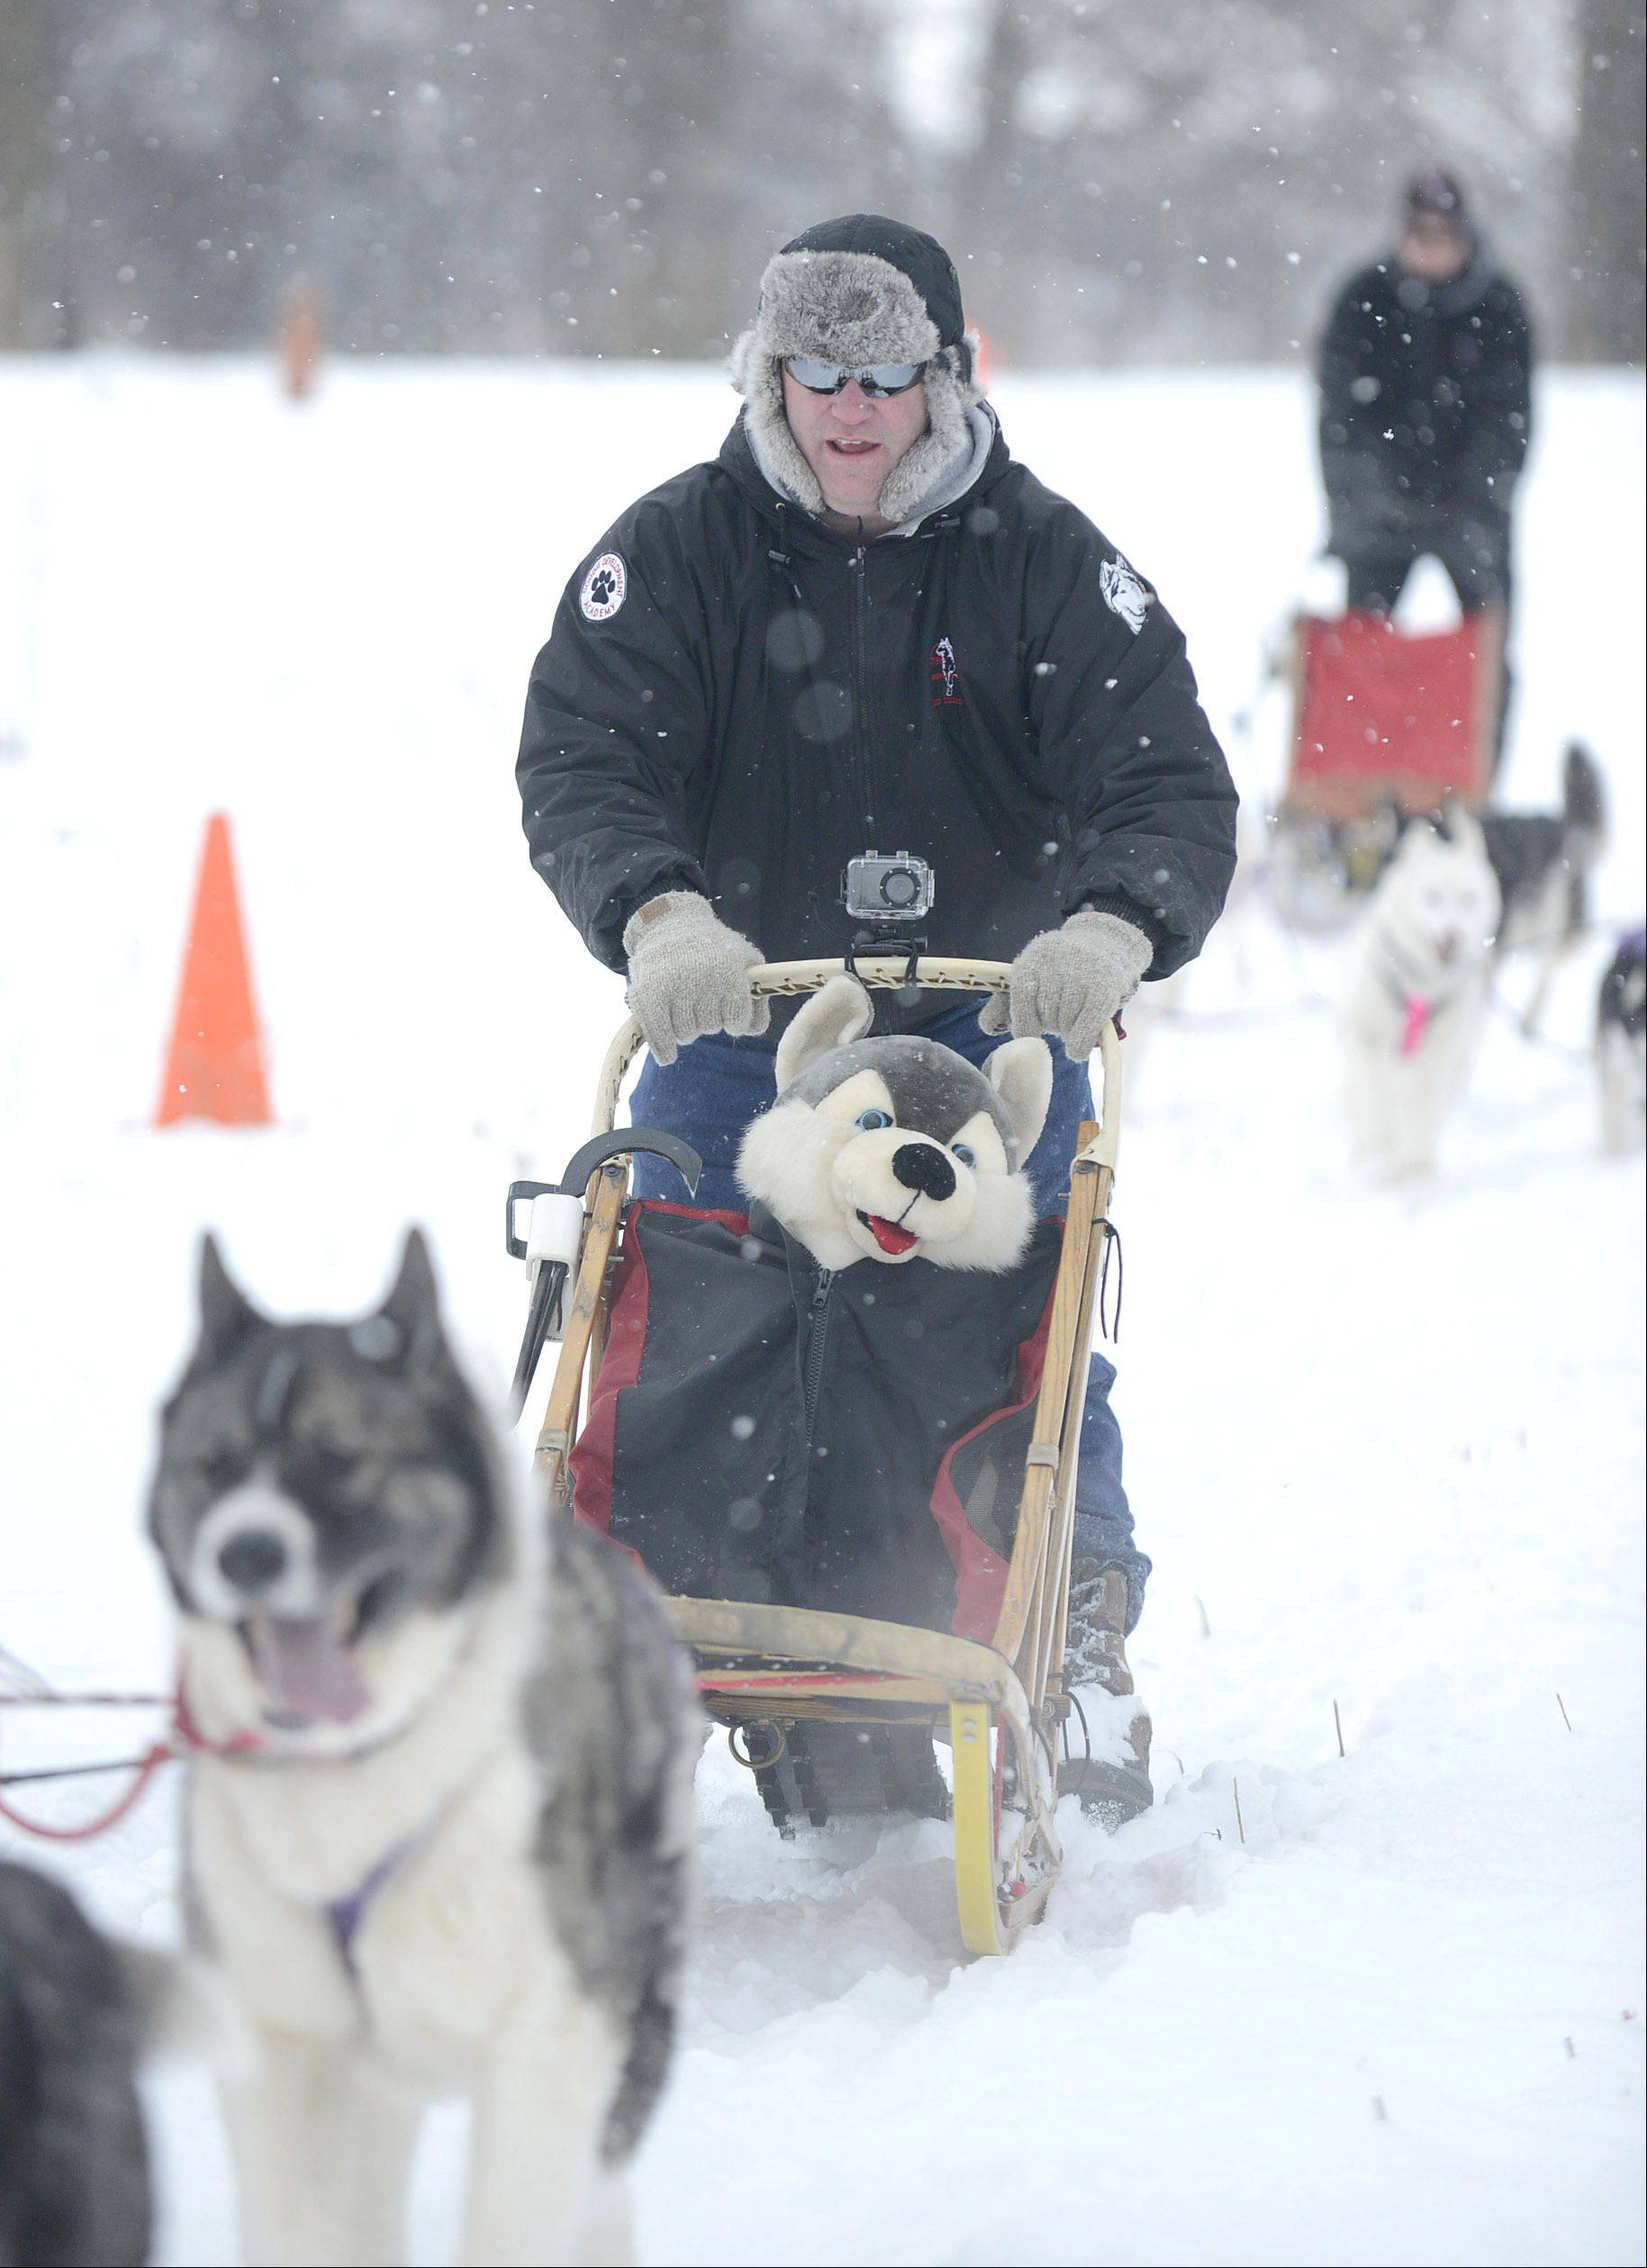 Jason Hussong of Machesney Park leads the Free Spirit Siberian Rescue sled demo team at Hickory Knolls Discovery Center in St. Charles on Saturday. Hussong, representing the Harvard-based rescue, started mushing in 2006 and organized the team for the rescue.